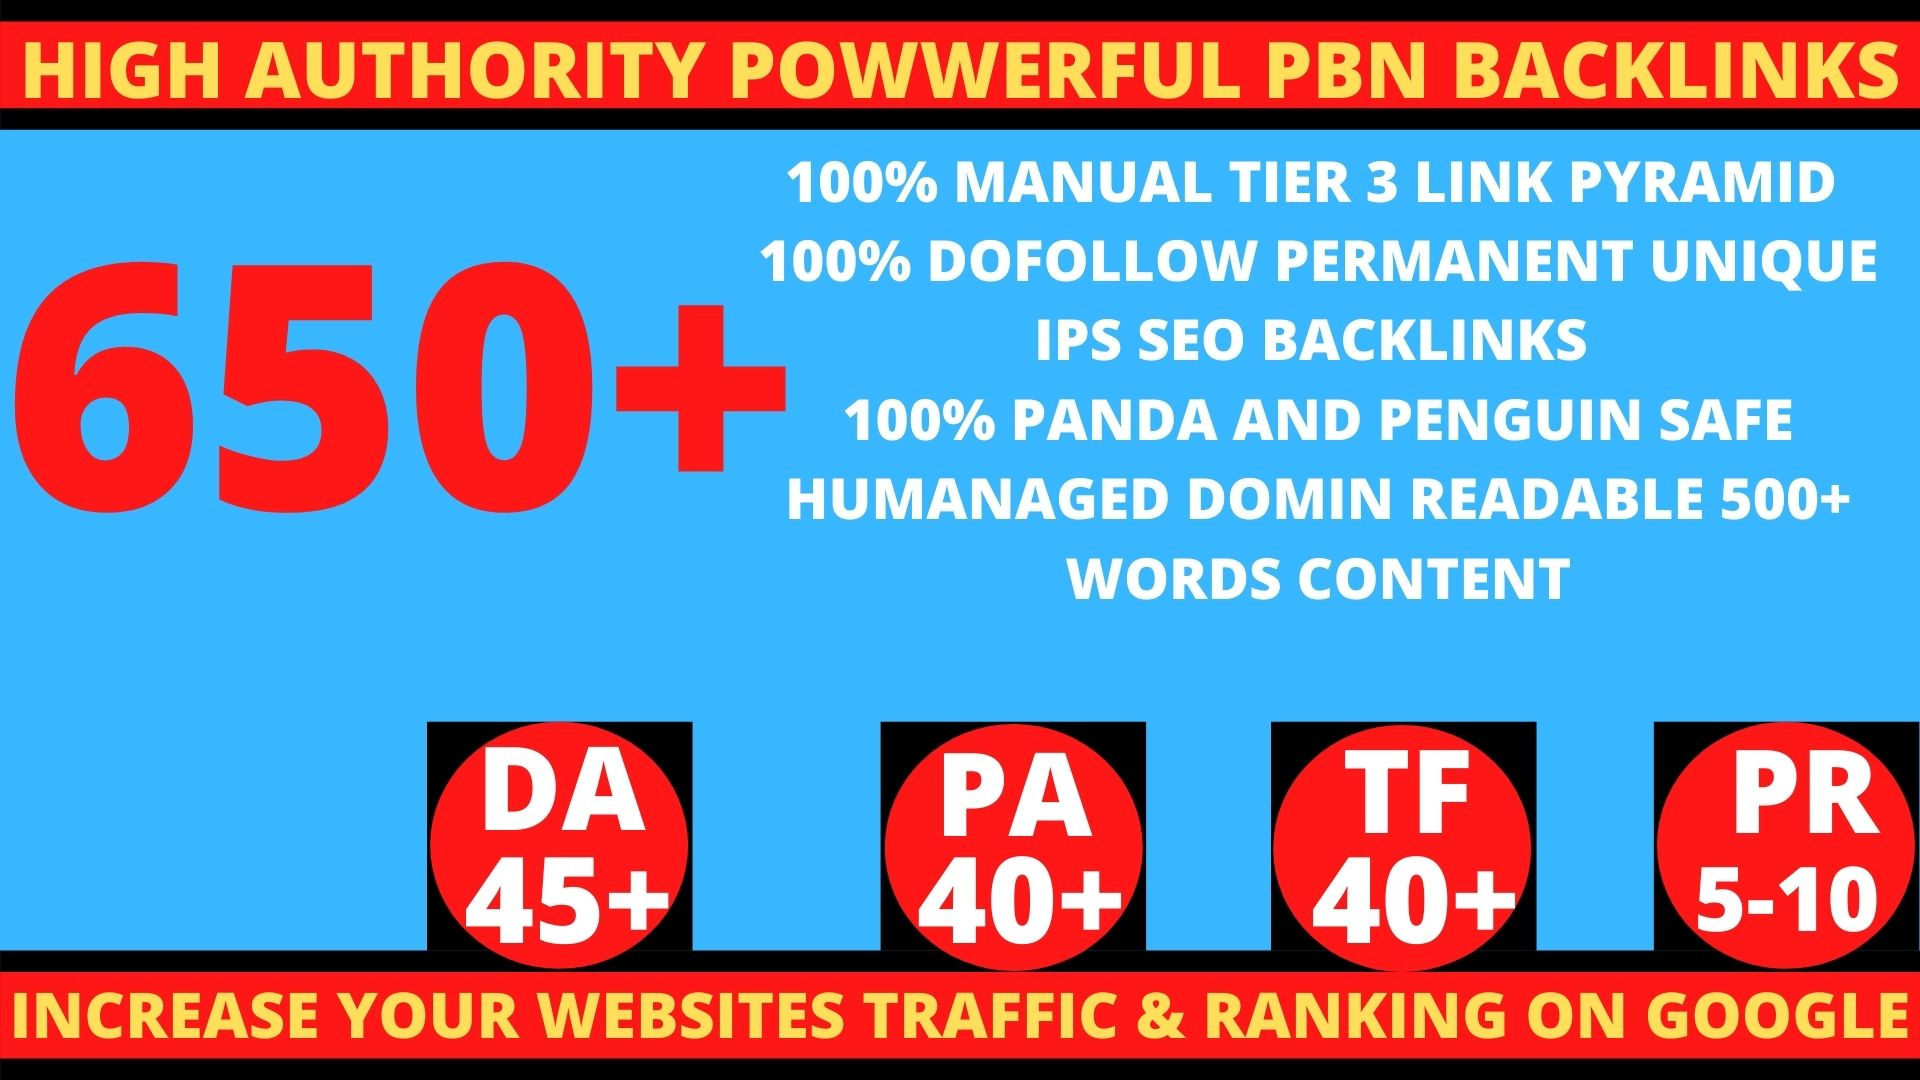 Get Extreme 650+PBN Backlink in your website homepage with HIGH DA/PA/TF/CF with unique website